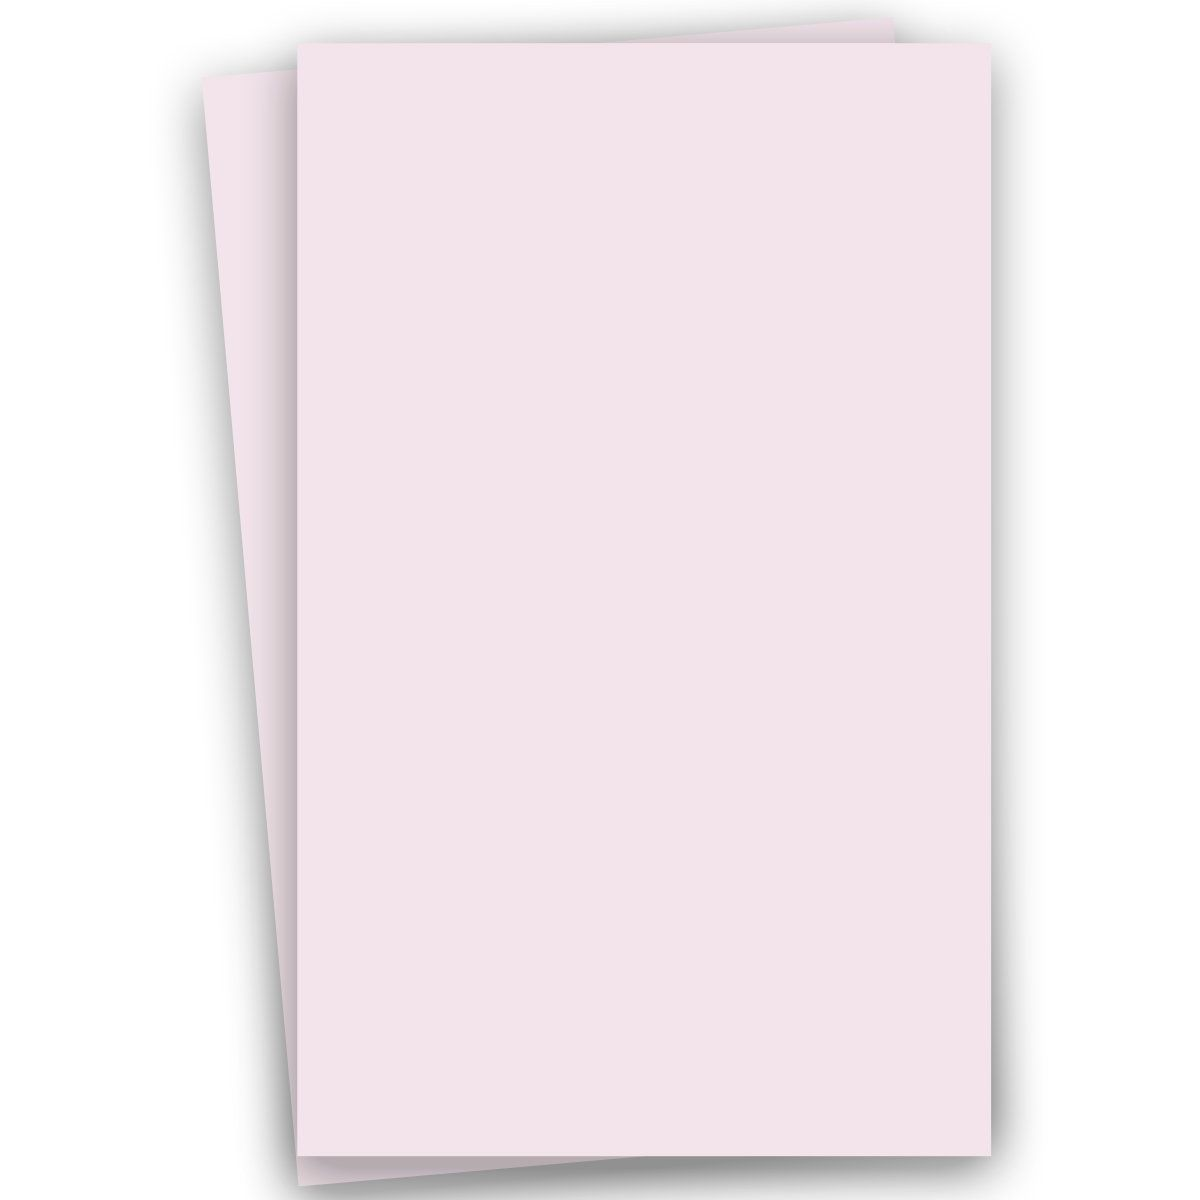 French Paper Poptone Pink Lemonade 11x17 70t 104gsm Text Paper 250 Pk In 2020 French Paper Soft Pink Pink Paper